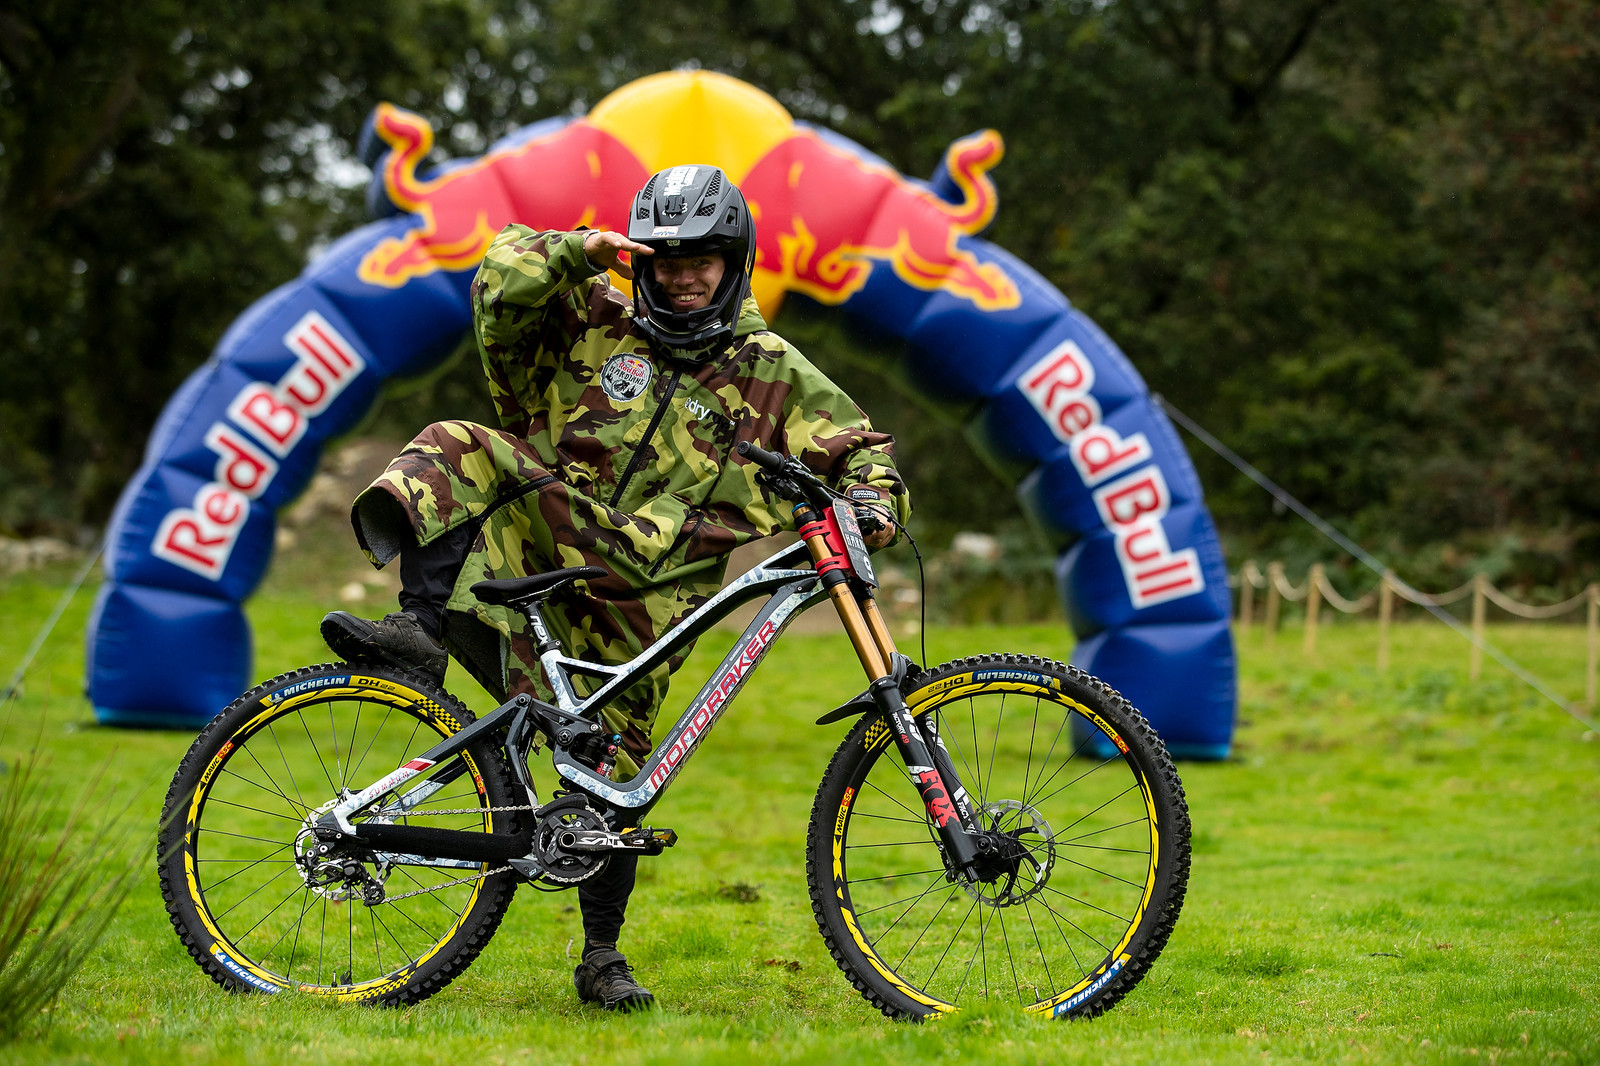 Laurie Greenland with his Mondraker Summum - The Bikes of Red Bull Hardline - The Bikes of Red Bull Hardline - Mountain Biking Pictures - Vital MTB